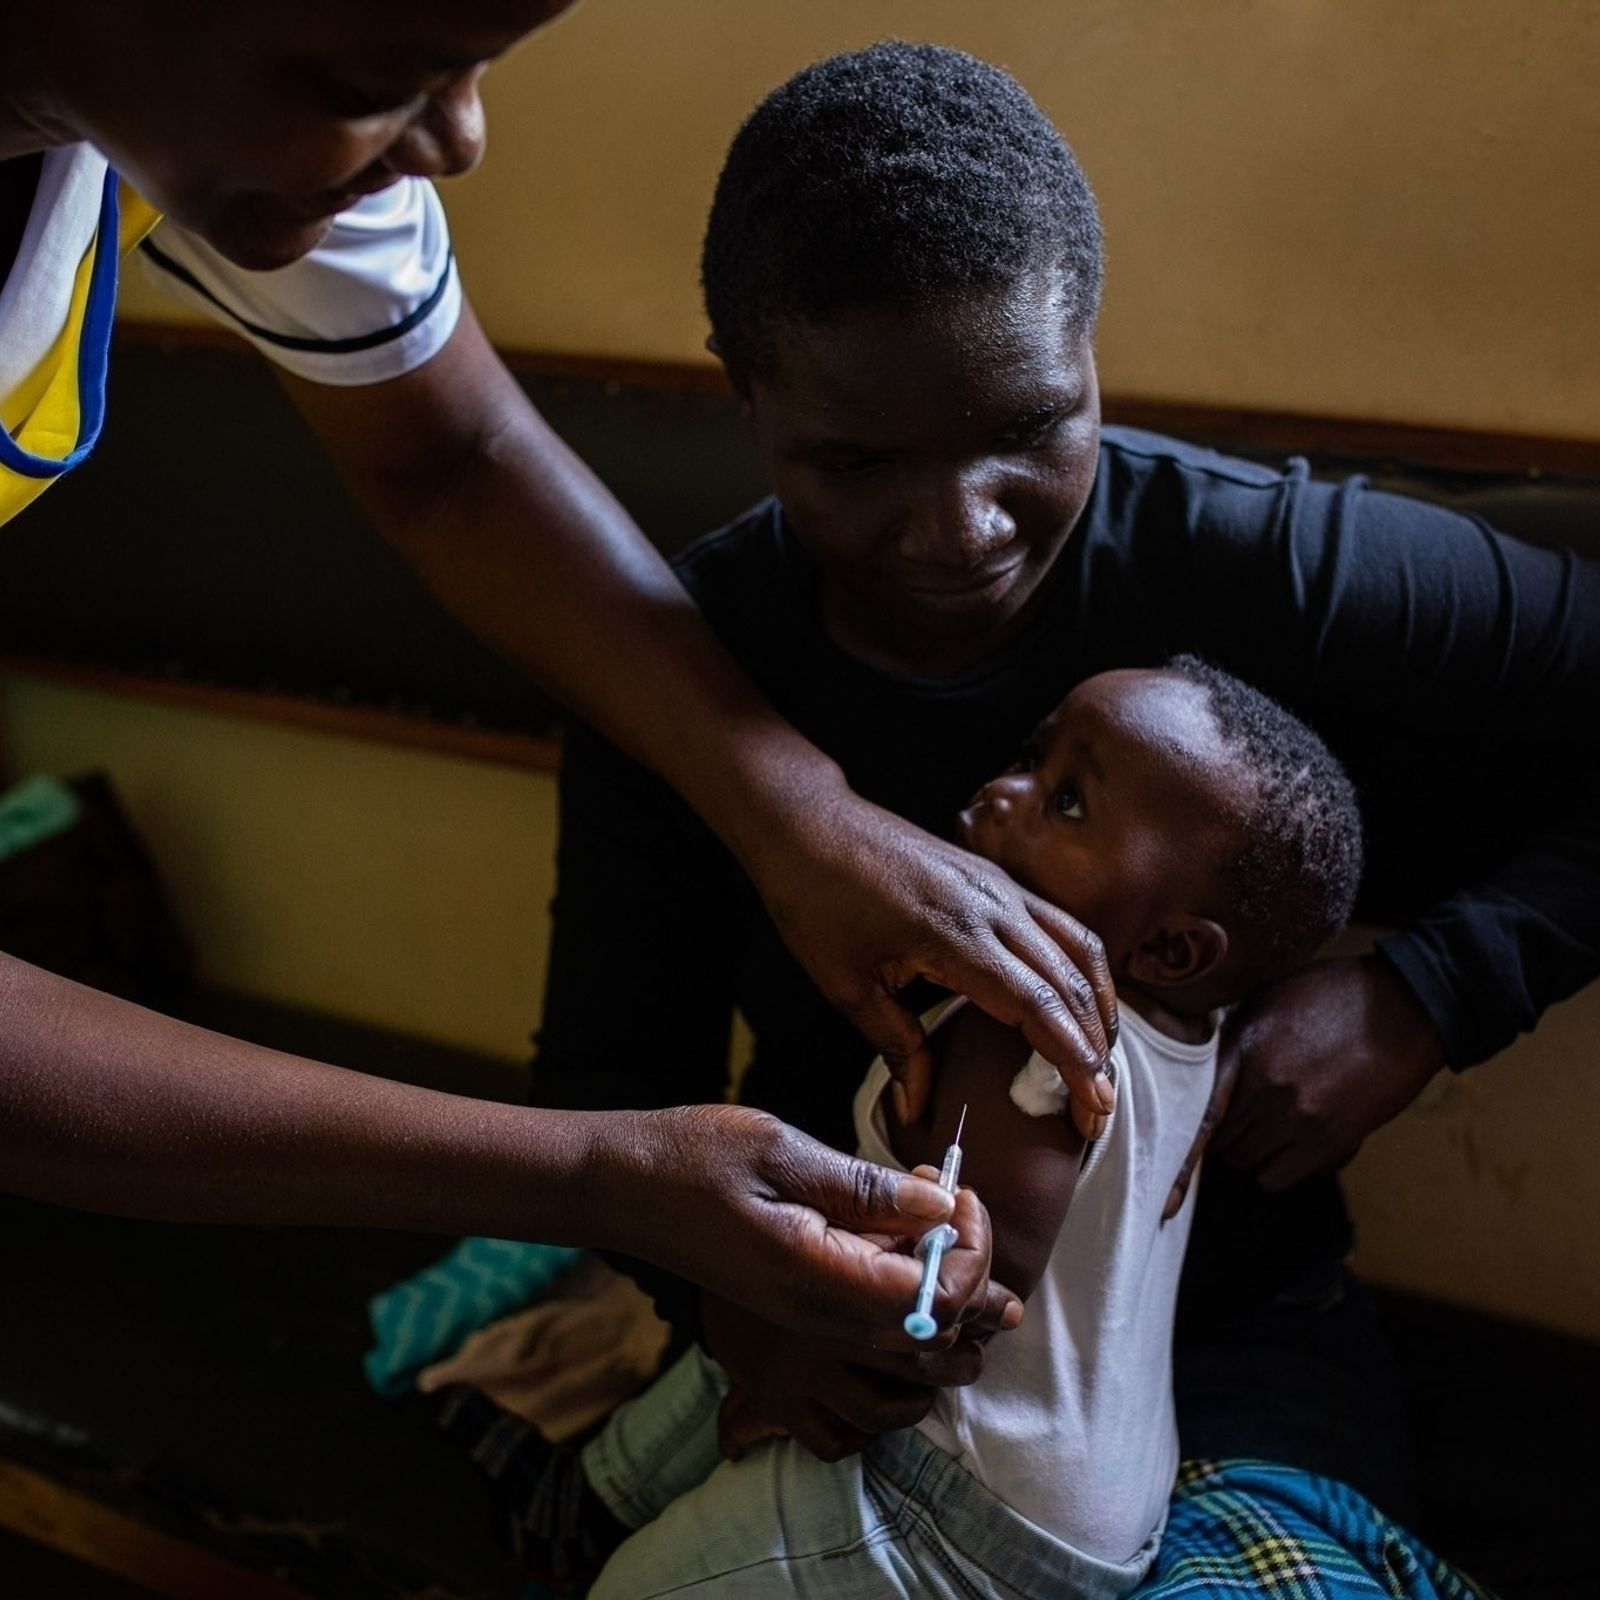 Across Kenya, Malawi, and Ghana, babies under two are receiving the world's first-ever malaria vaccine for ...